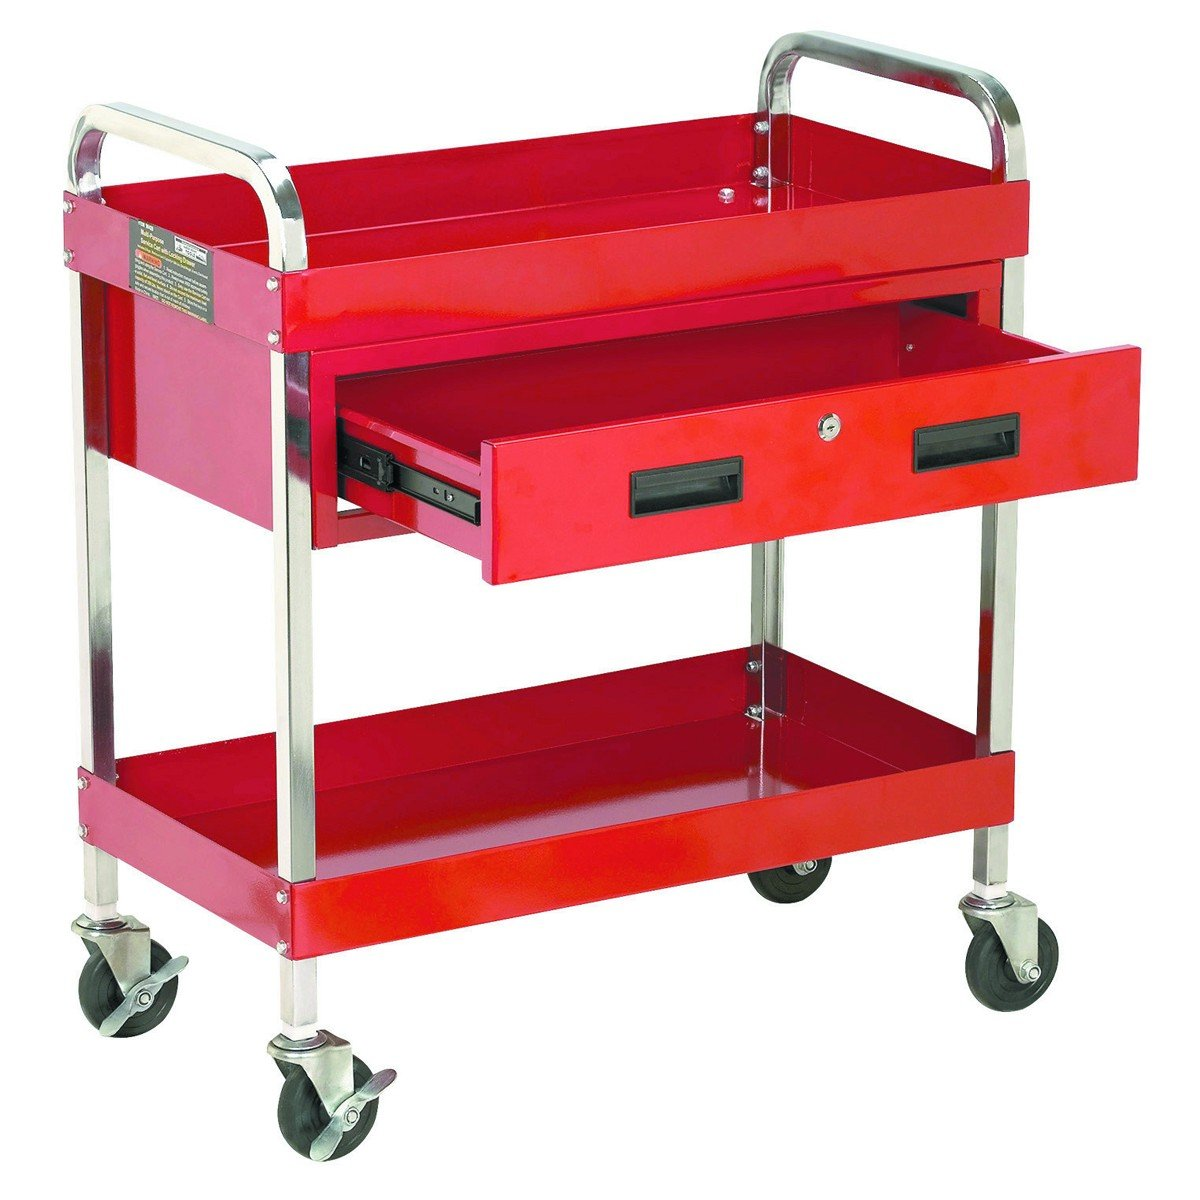 Large Tool Box Rolling Service Cart. Confidently Use Our 2 Shelves and Locking Drawer Tray Guaranteed for Your Automotive Repair or Garage Handyman Tools Storage Needs. Roll the Home Utility Chest to Site with Boat, Motorcycle, or Auto Motor Parts. by US General